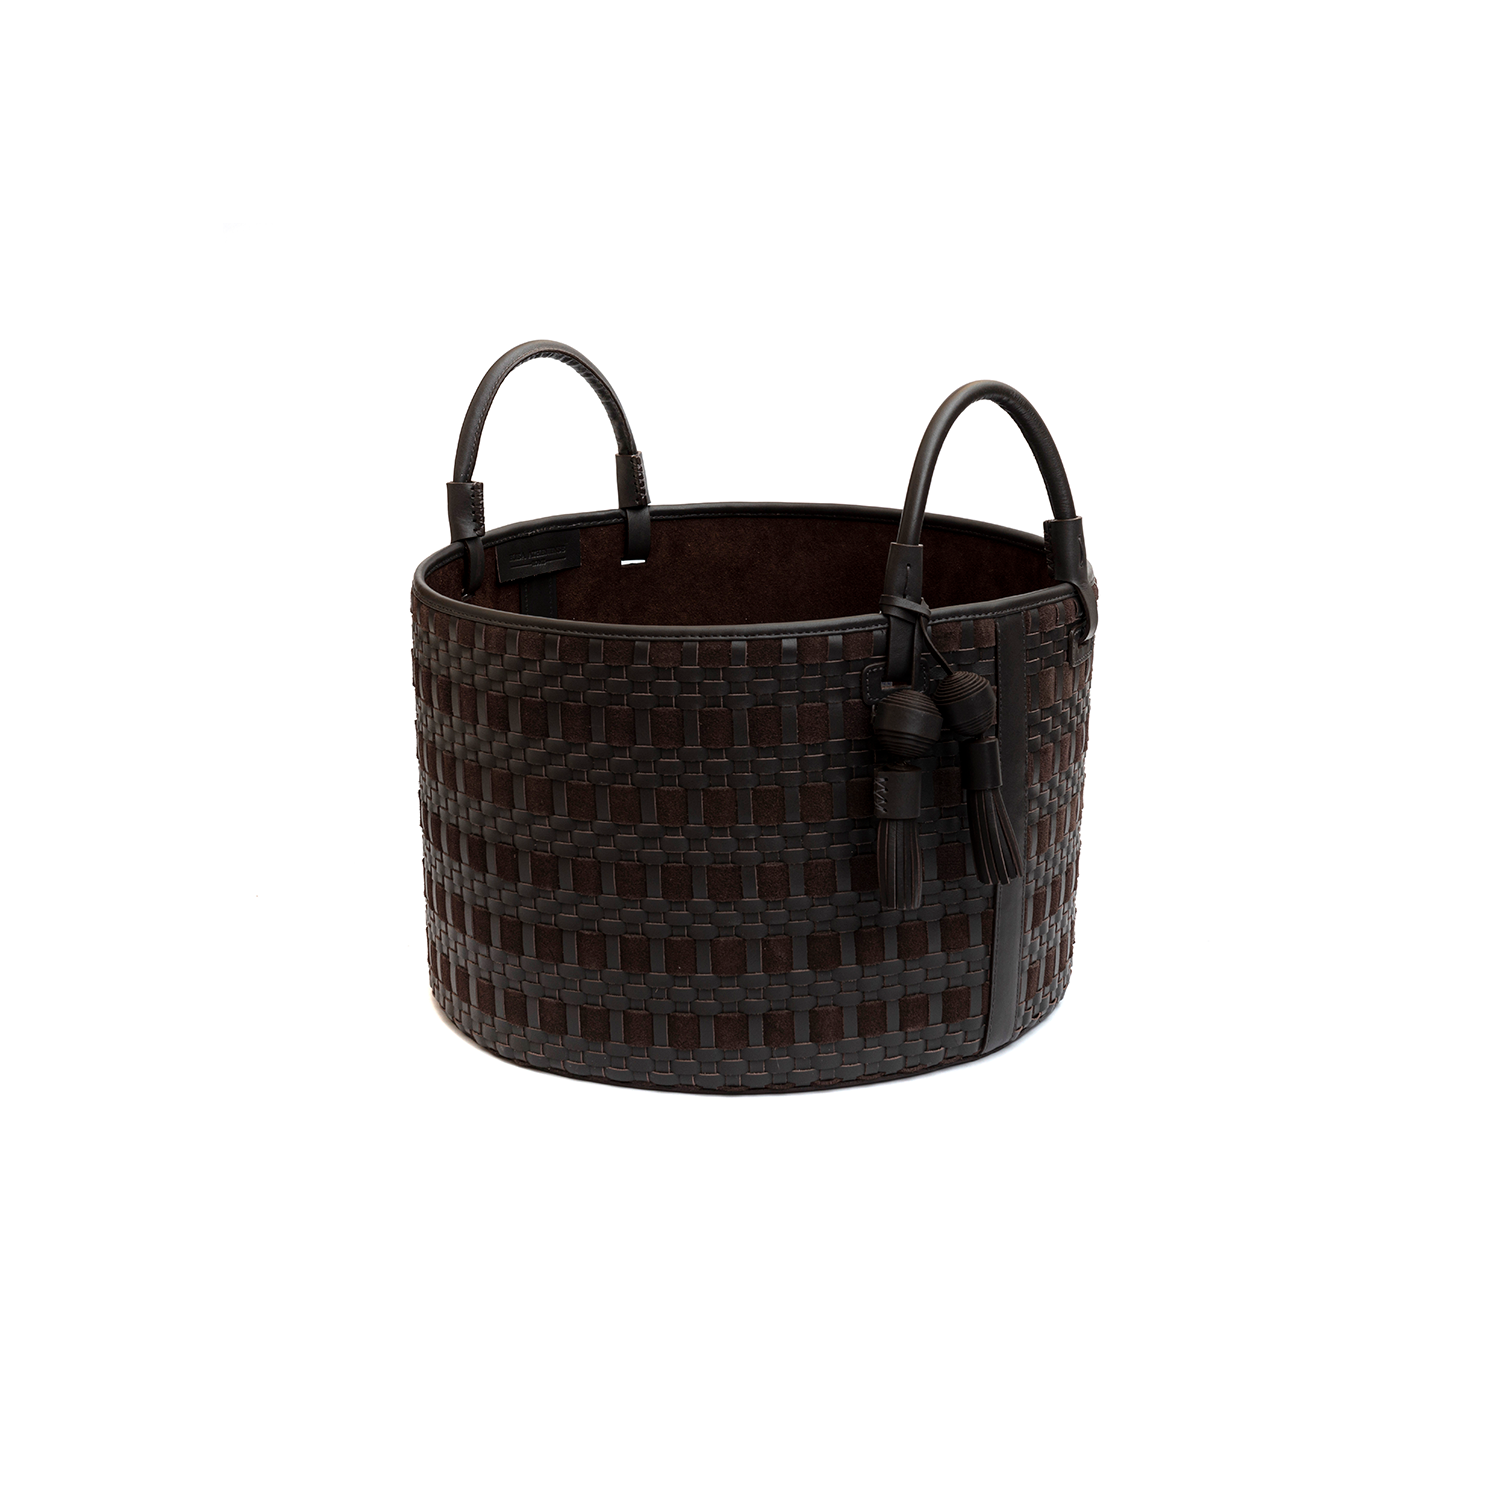 Paraty Tiras Woven Leather Basket - Paraty Tiras Woven Leather Basket is designed to complement an ambient with natural and sophisticated feeling, ideal when placed next your sofa or bed, perfect for magazines and throws storage. Elisa Atheniense woven leather pieces, are handmade and manufactured in Brazil using an exclusive treated leather that brings the soft feel and touch to every single piece. Elisa Atheniense Home Baskets have a delicate tassel attached.   The baskets are available in three sizes. Bespoke sizes are also available under project request as well as colours, see colour chart for reference. | Matter of Stuff